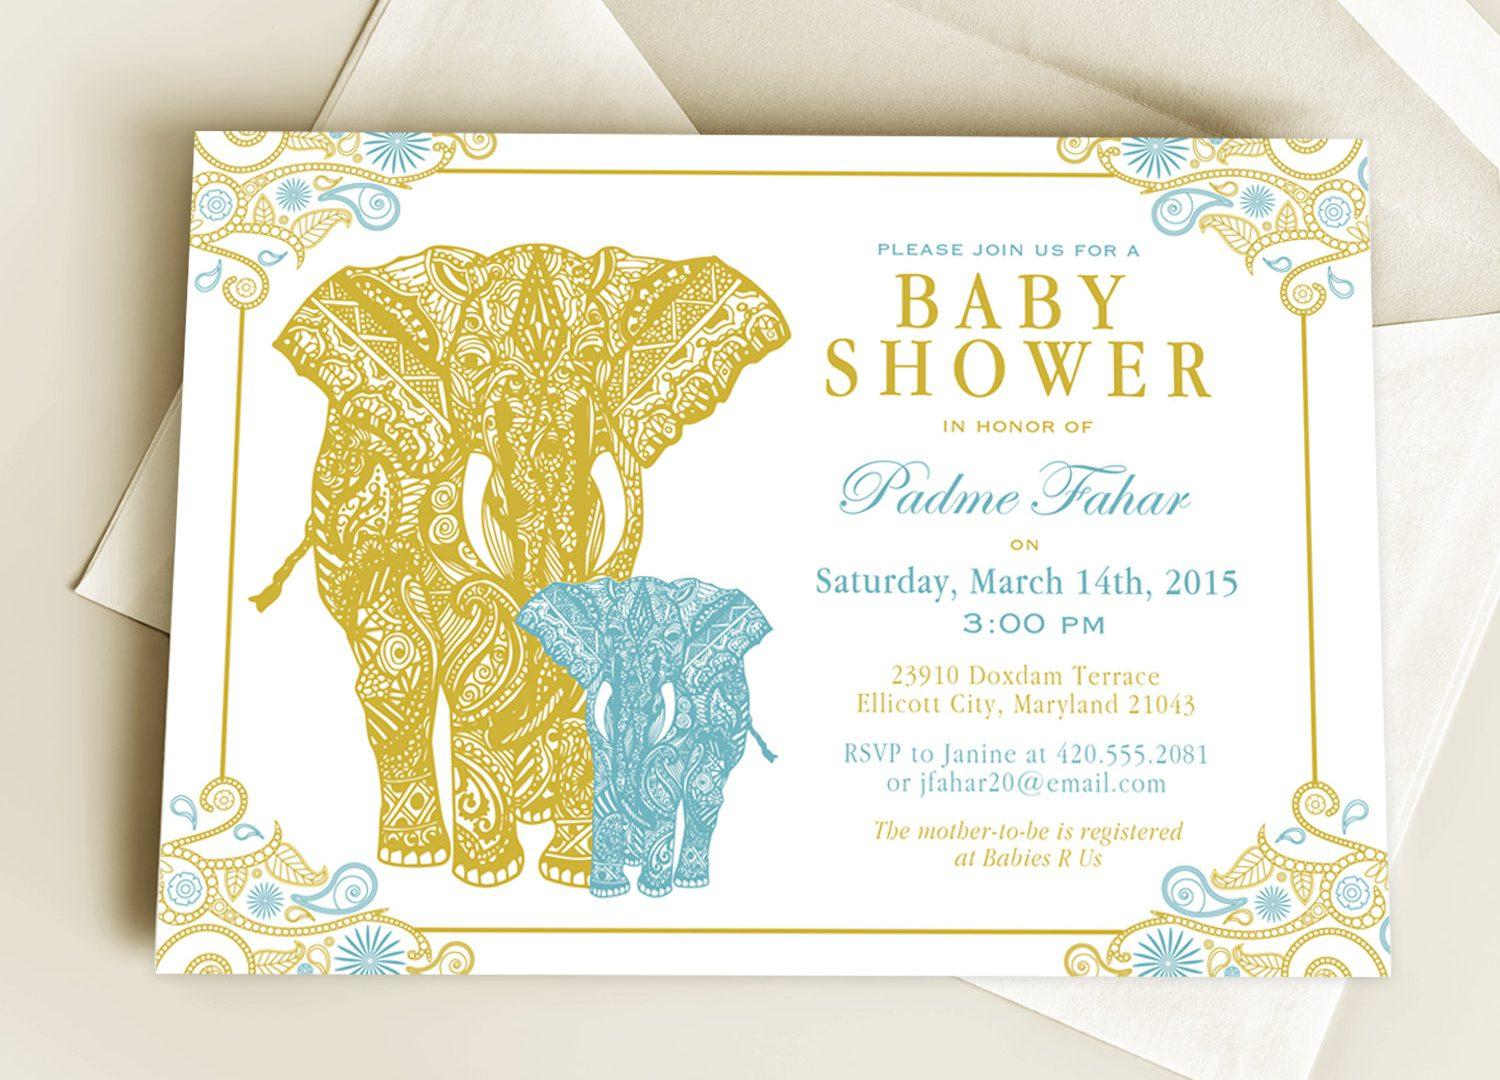 Baby Shower Invitation Templates India - Templates #45282